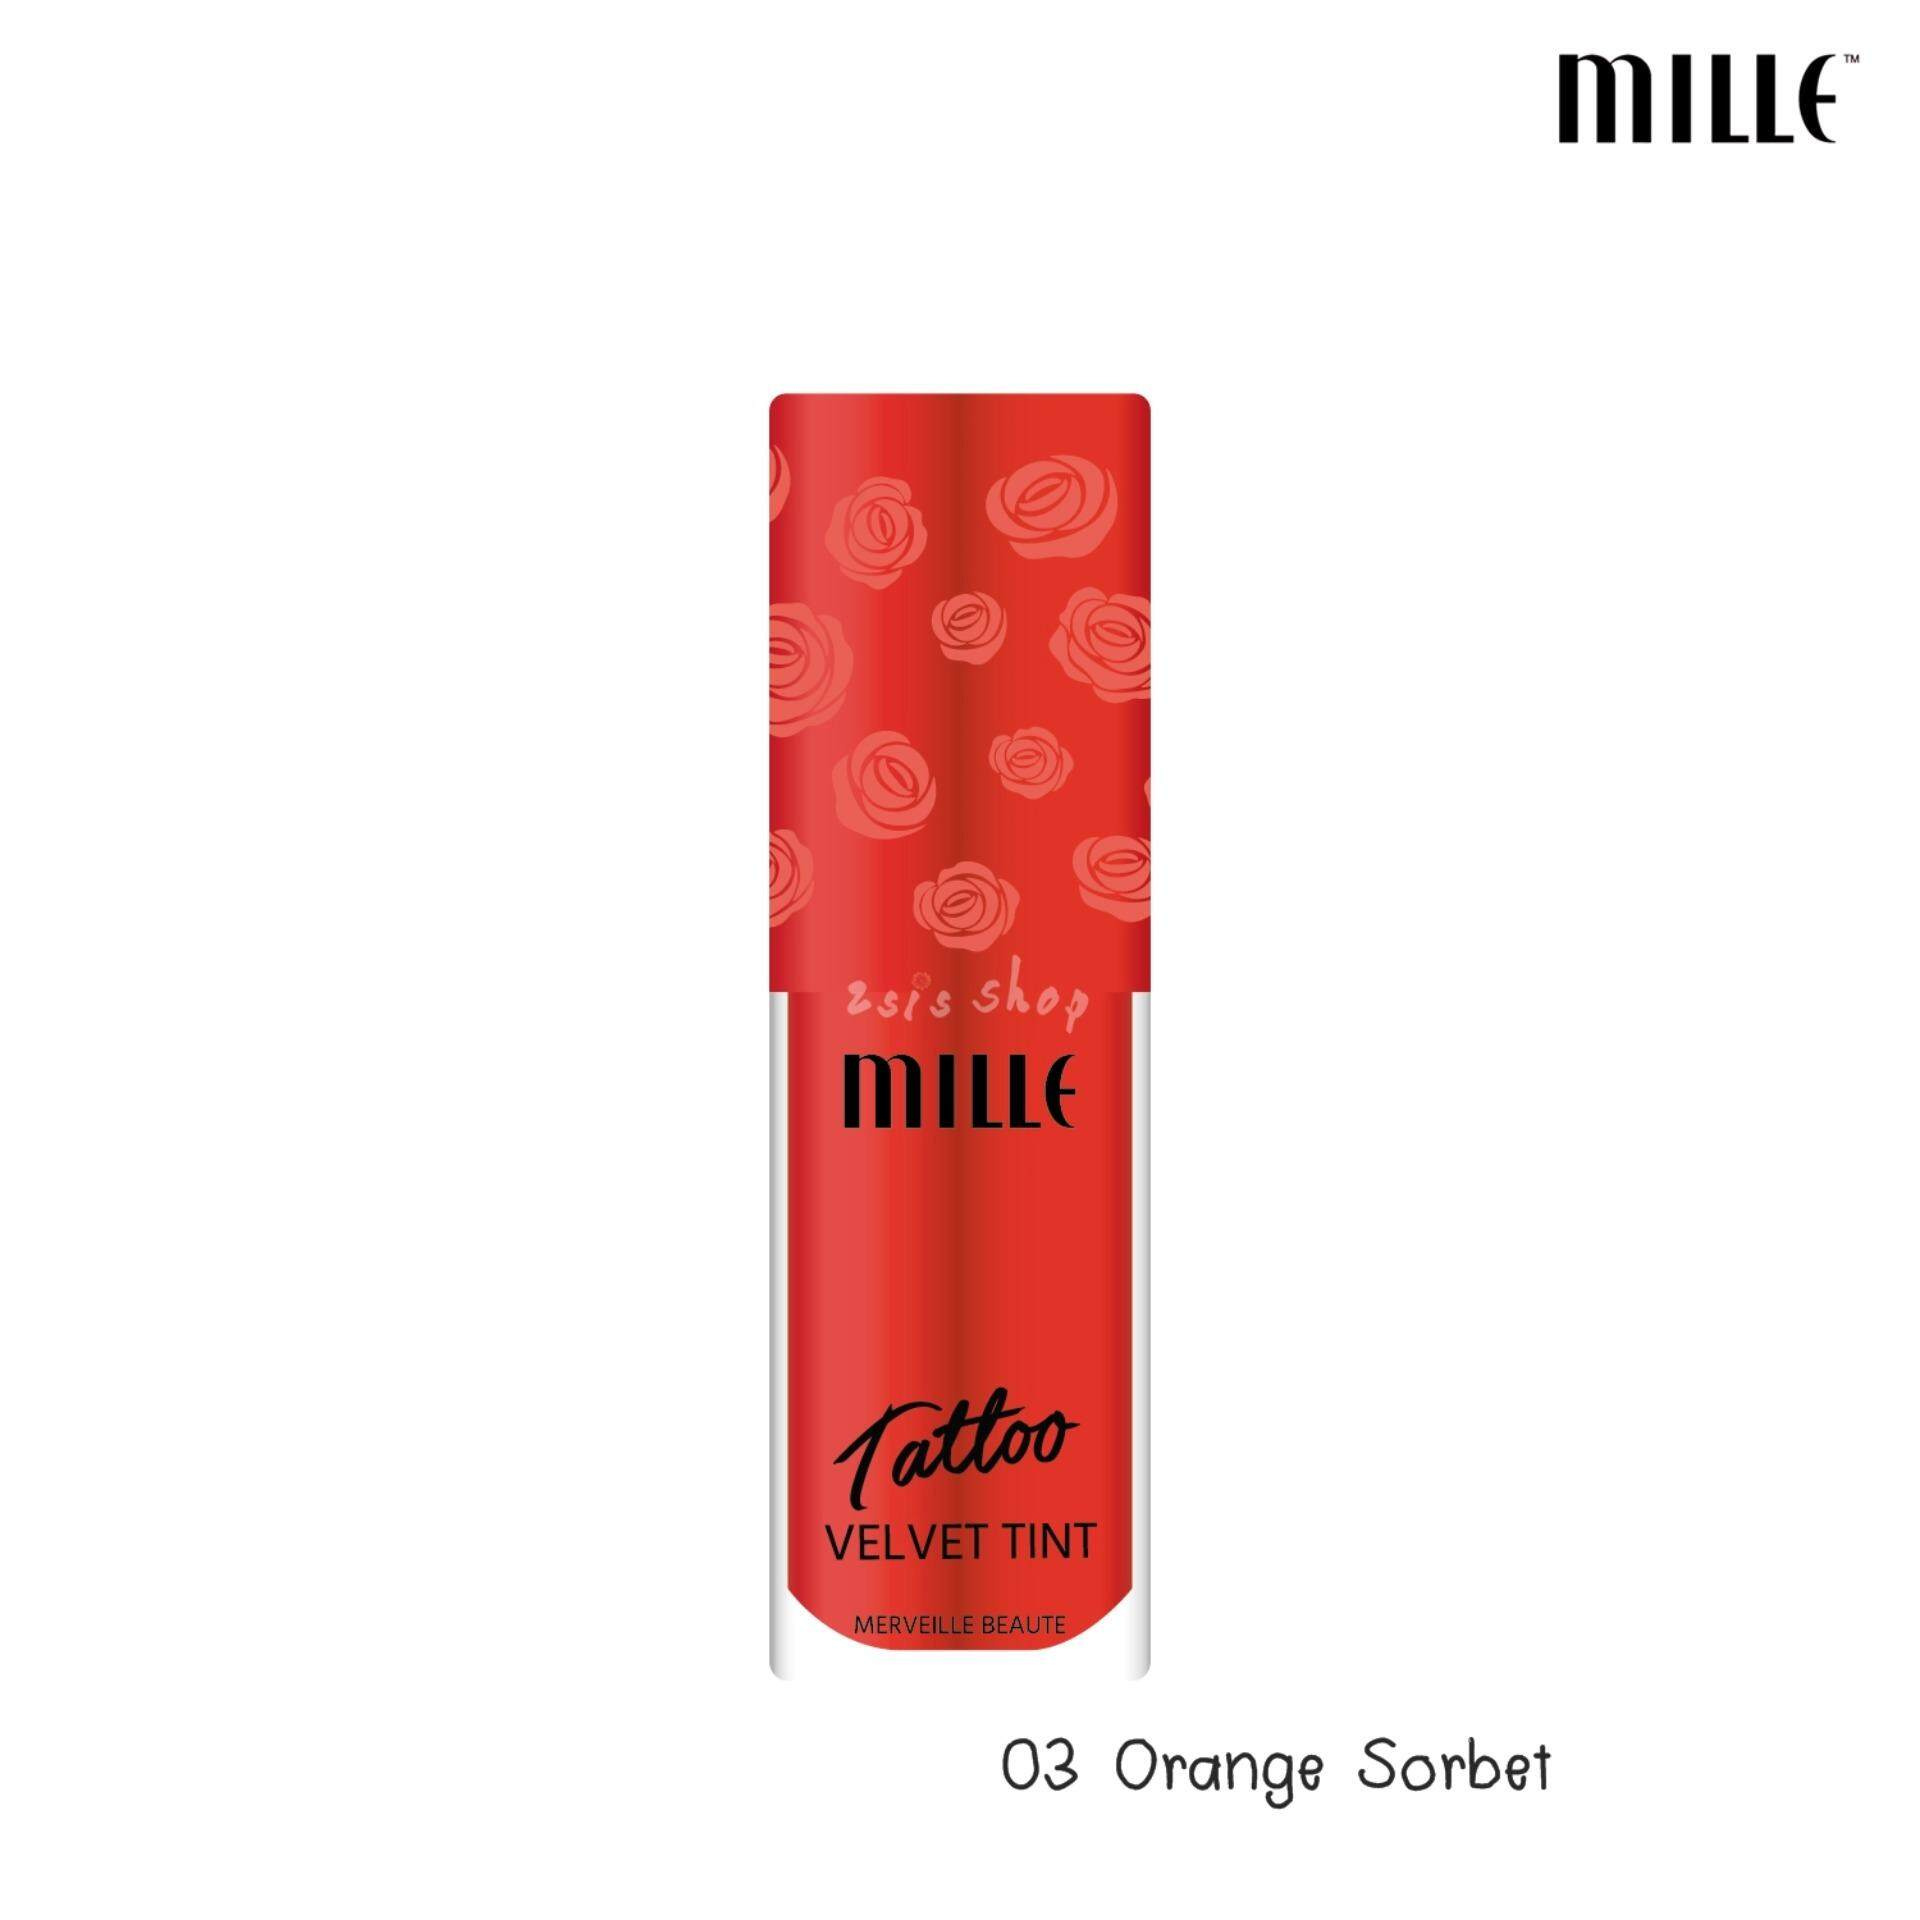 Mille Tattoo Velvet Tint #3 Orange Sorbet